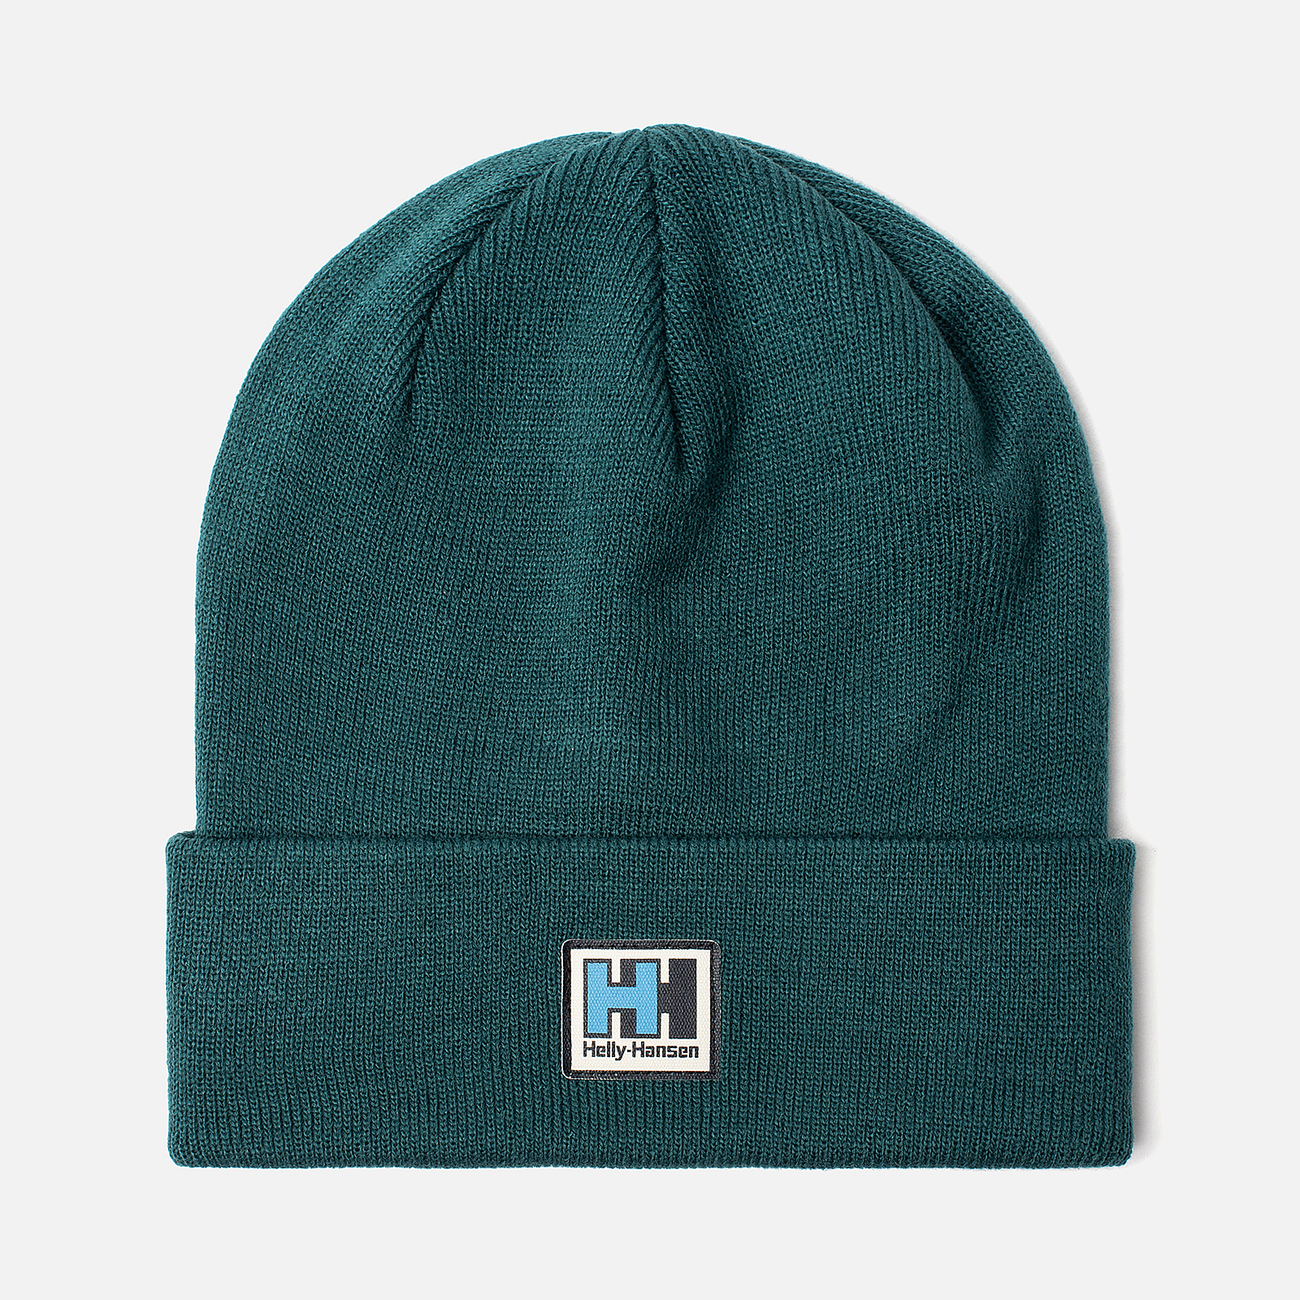 Шапка Helly Hansen HH Knitted Beanie Heritage Teal